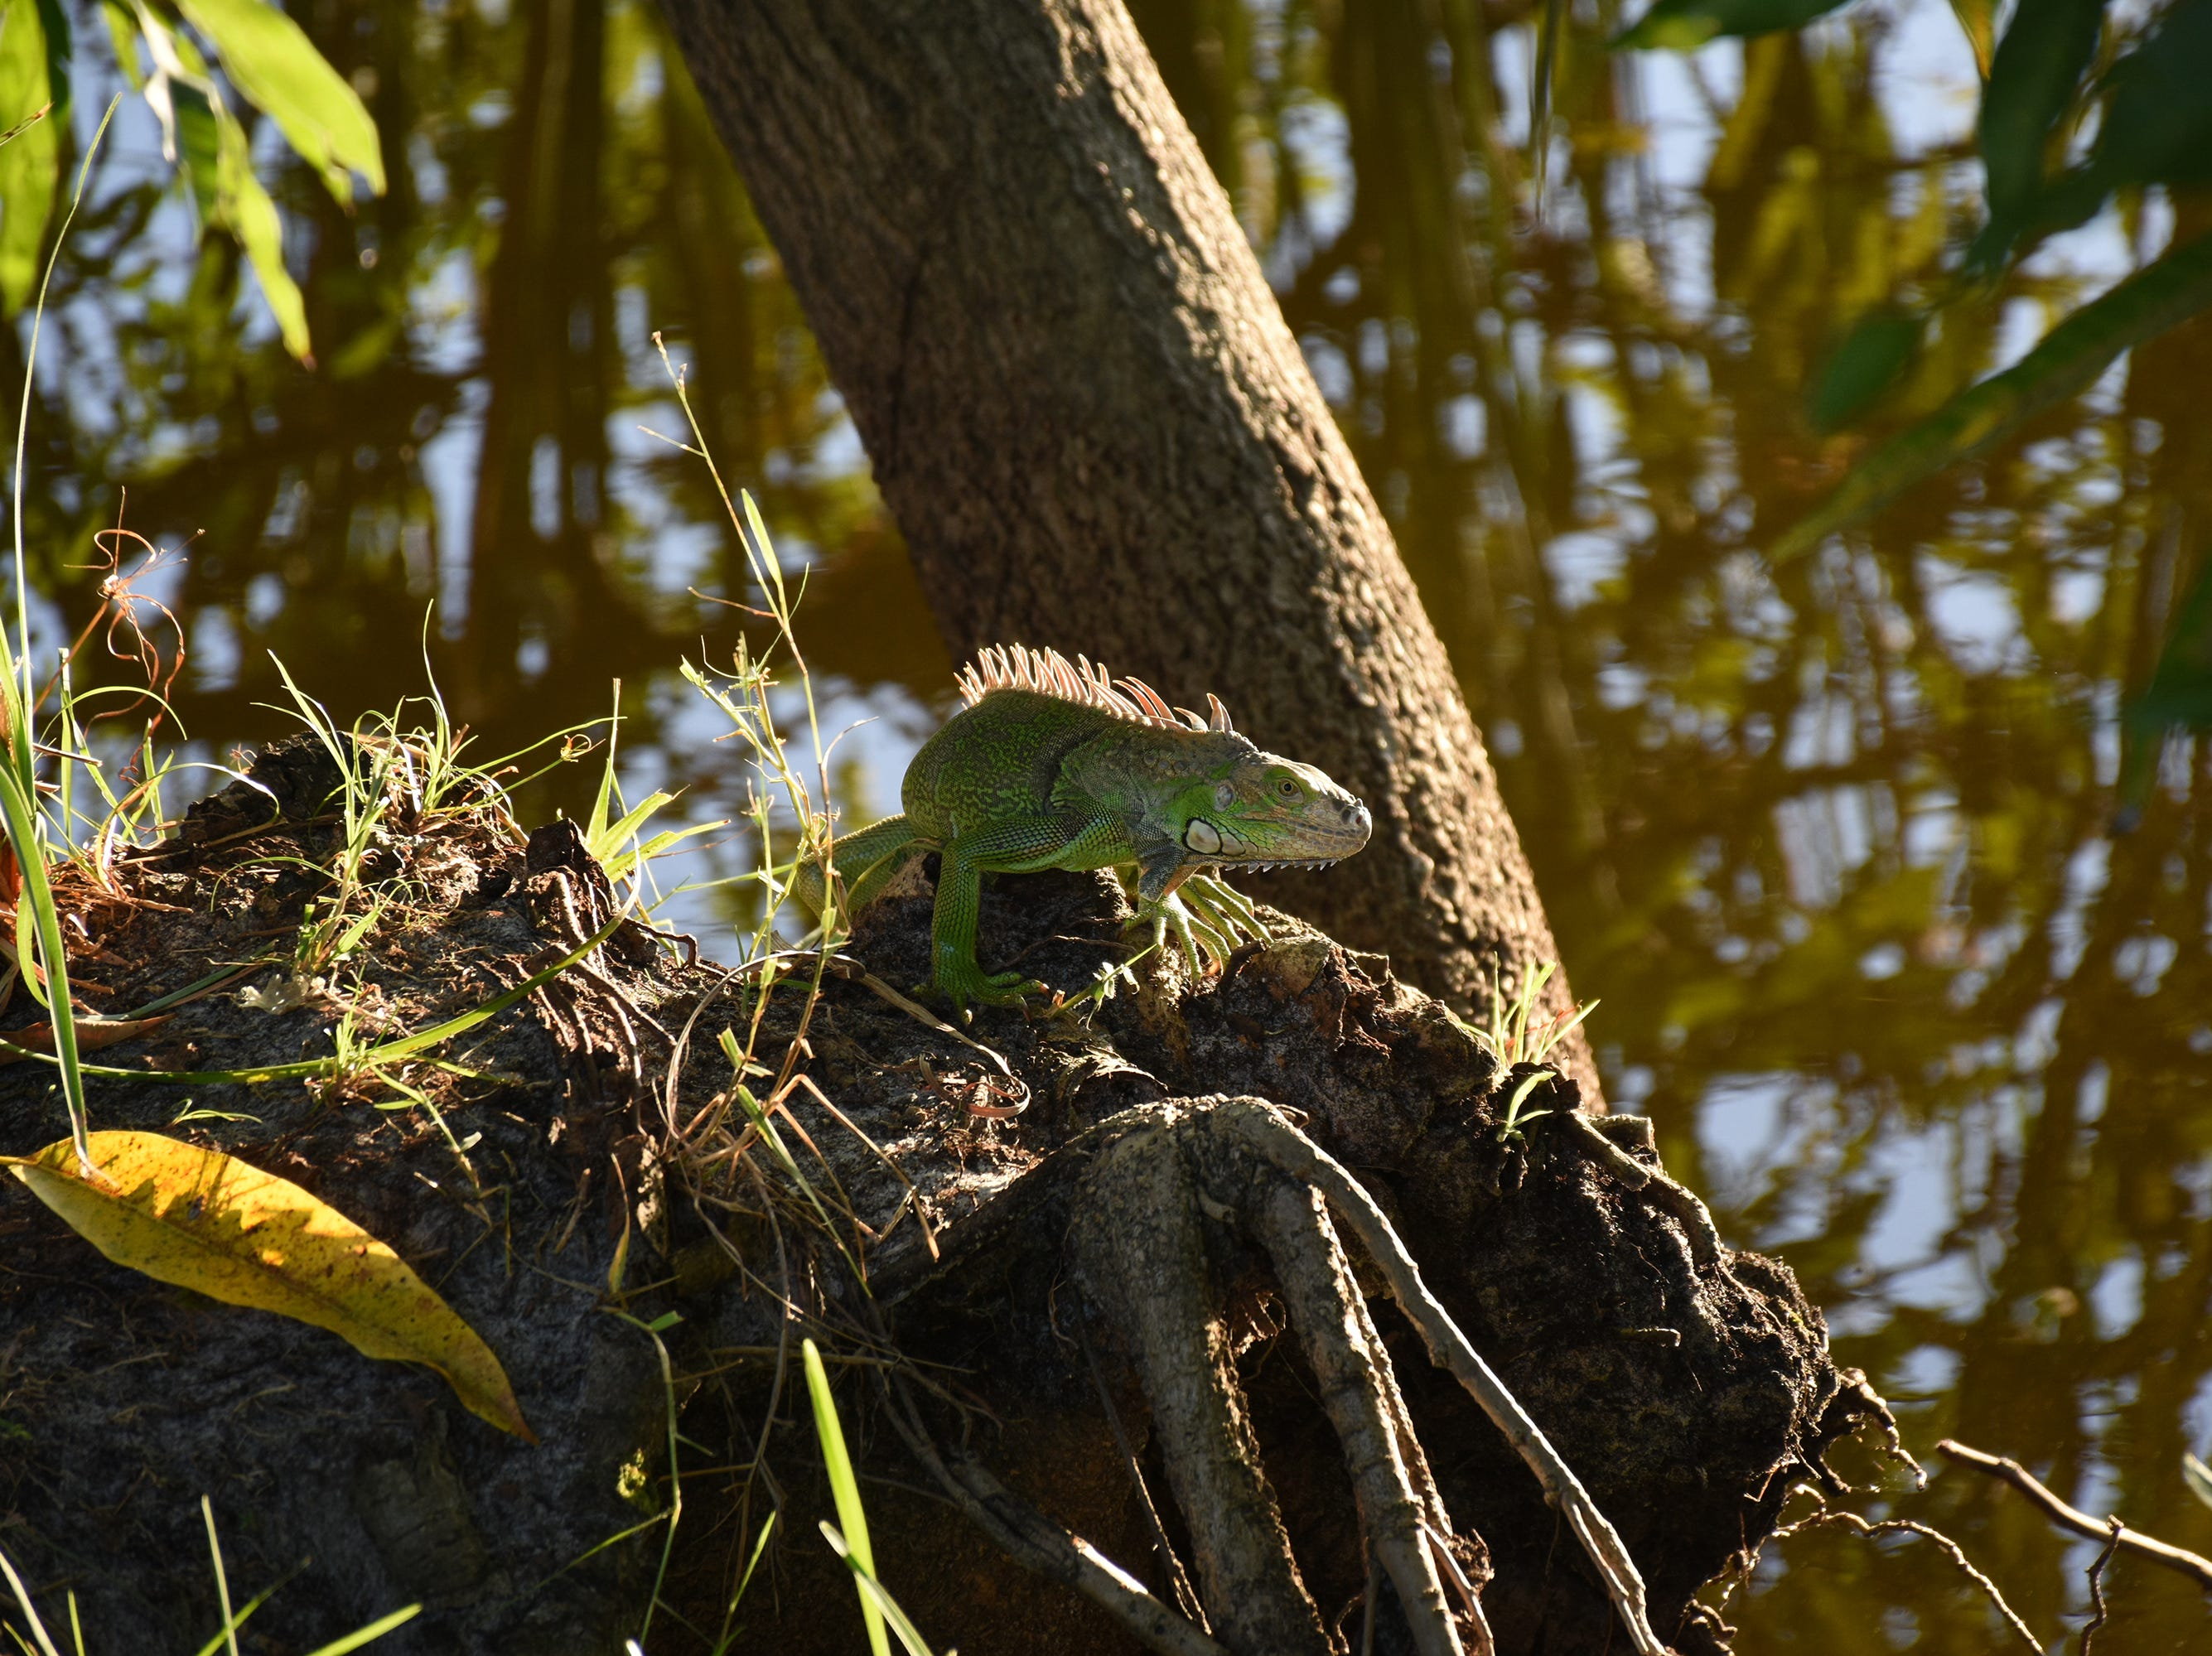 A green iguana perches by the edge of a freshwater lake. The City of Marco Island hosted a presentation on invasive iguanas conducted by the Florida Fish and Wildlife Conservation Commission on Wednesday evening in the Biles Community Room.